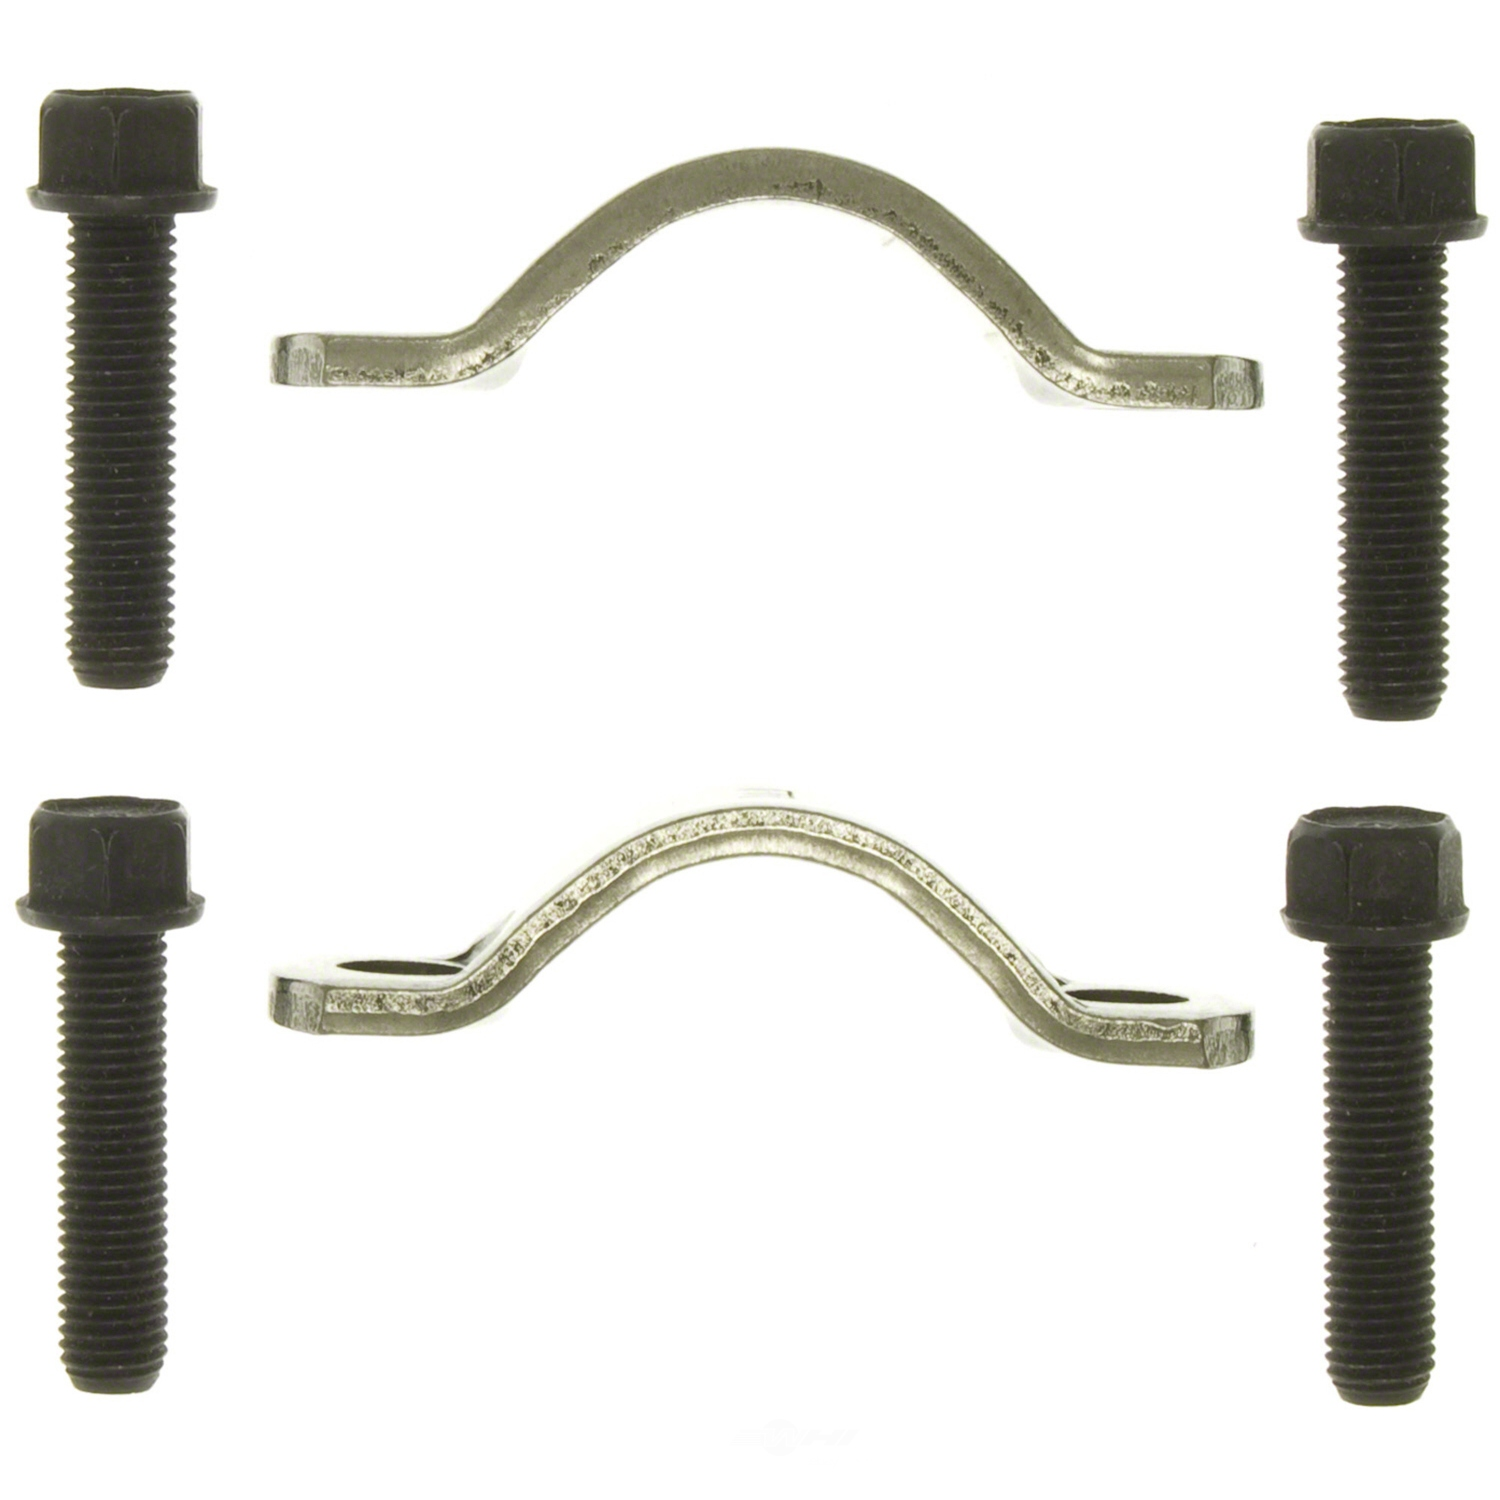 MOOG DRIVELINE PRODUCTS - Universal Joint Strap Kit - MDP 352-10